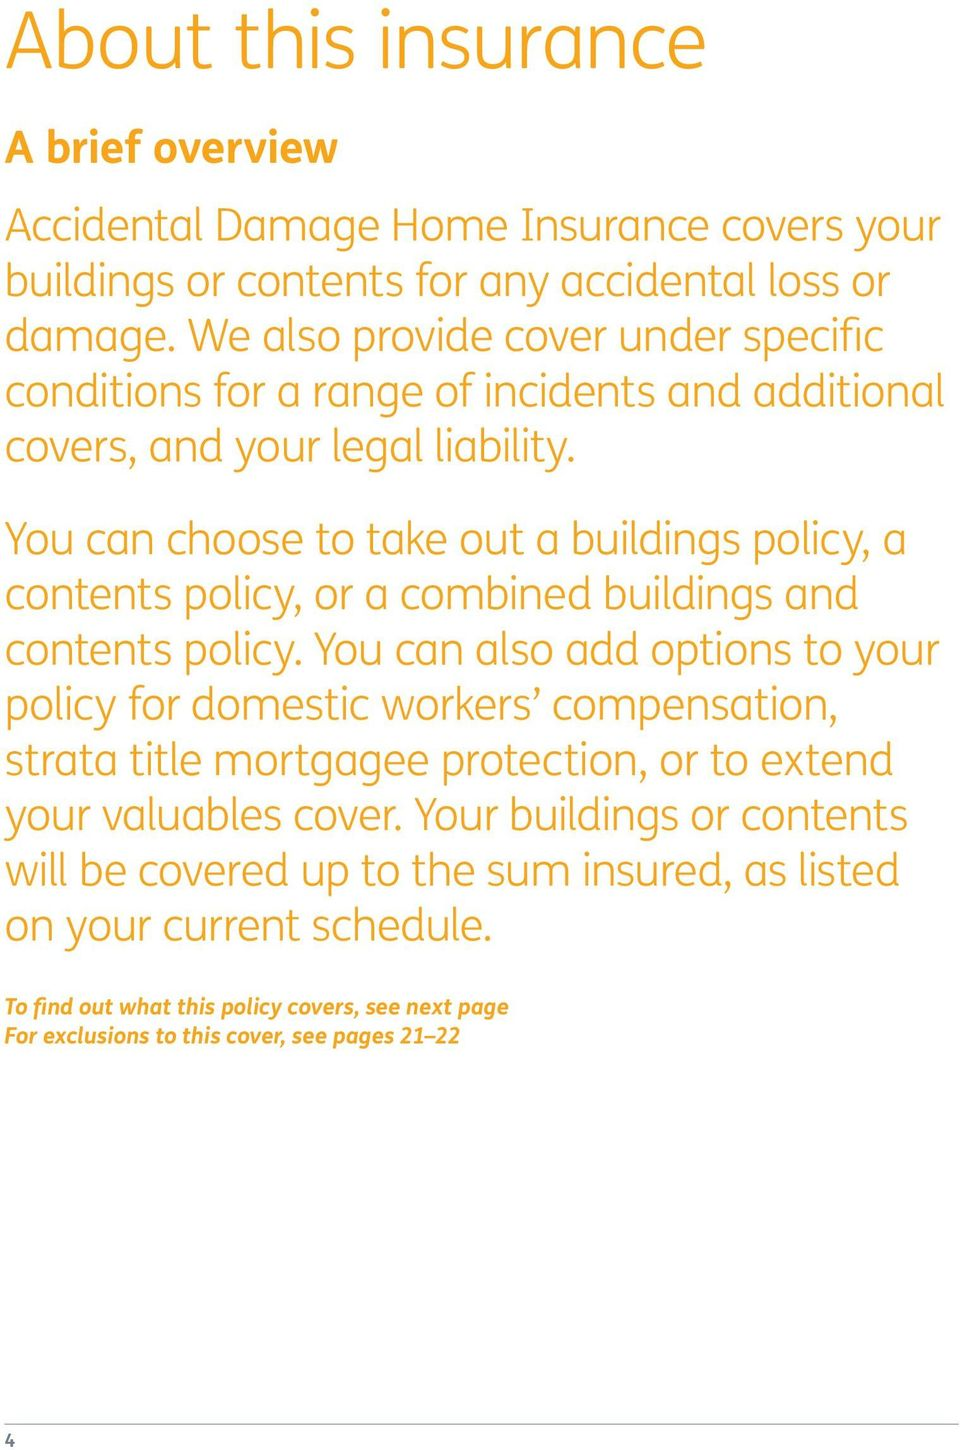 You can choose to take out a buildings policy, a contents policy, or a combined buildings and contents policy.